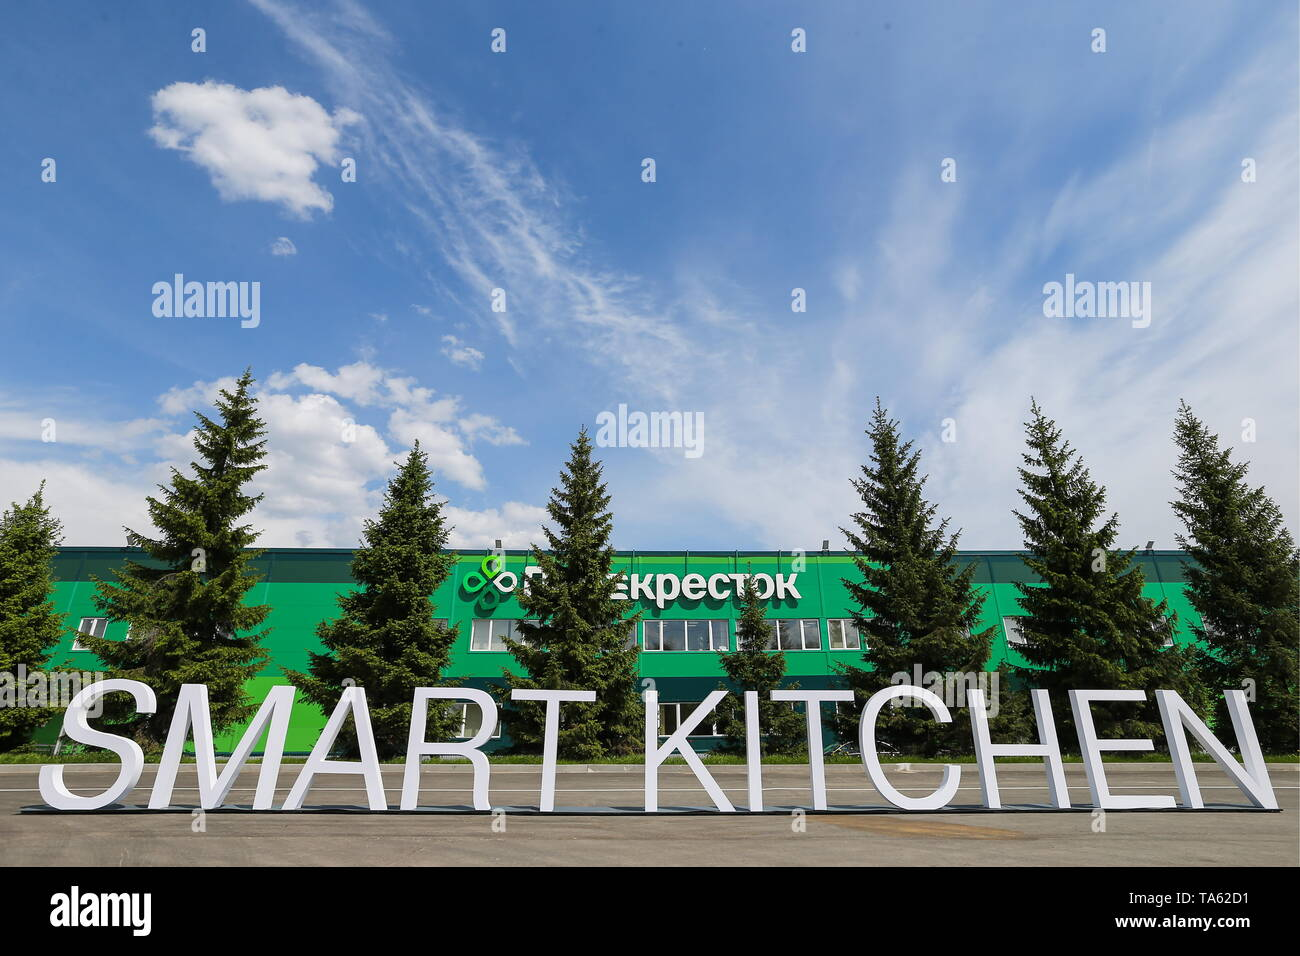 Russia. 22nd May, 2019. MOSCOW REGION, RUSSIA - MAY 22, 2019: Outside the Smart Kitchen launched by the Perekrestok supermarket chain; measuring 26,000sqm in area, the kitchen produces more than 200 various articles of food under the brand name Chef Perekrestok to supply to the Perekrestok supermarkets, Gavriil Grigorov/TASS Credit: ITAR-TASS News Agency/Alamy Live News - Stock Image